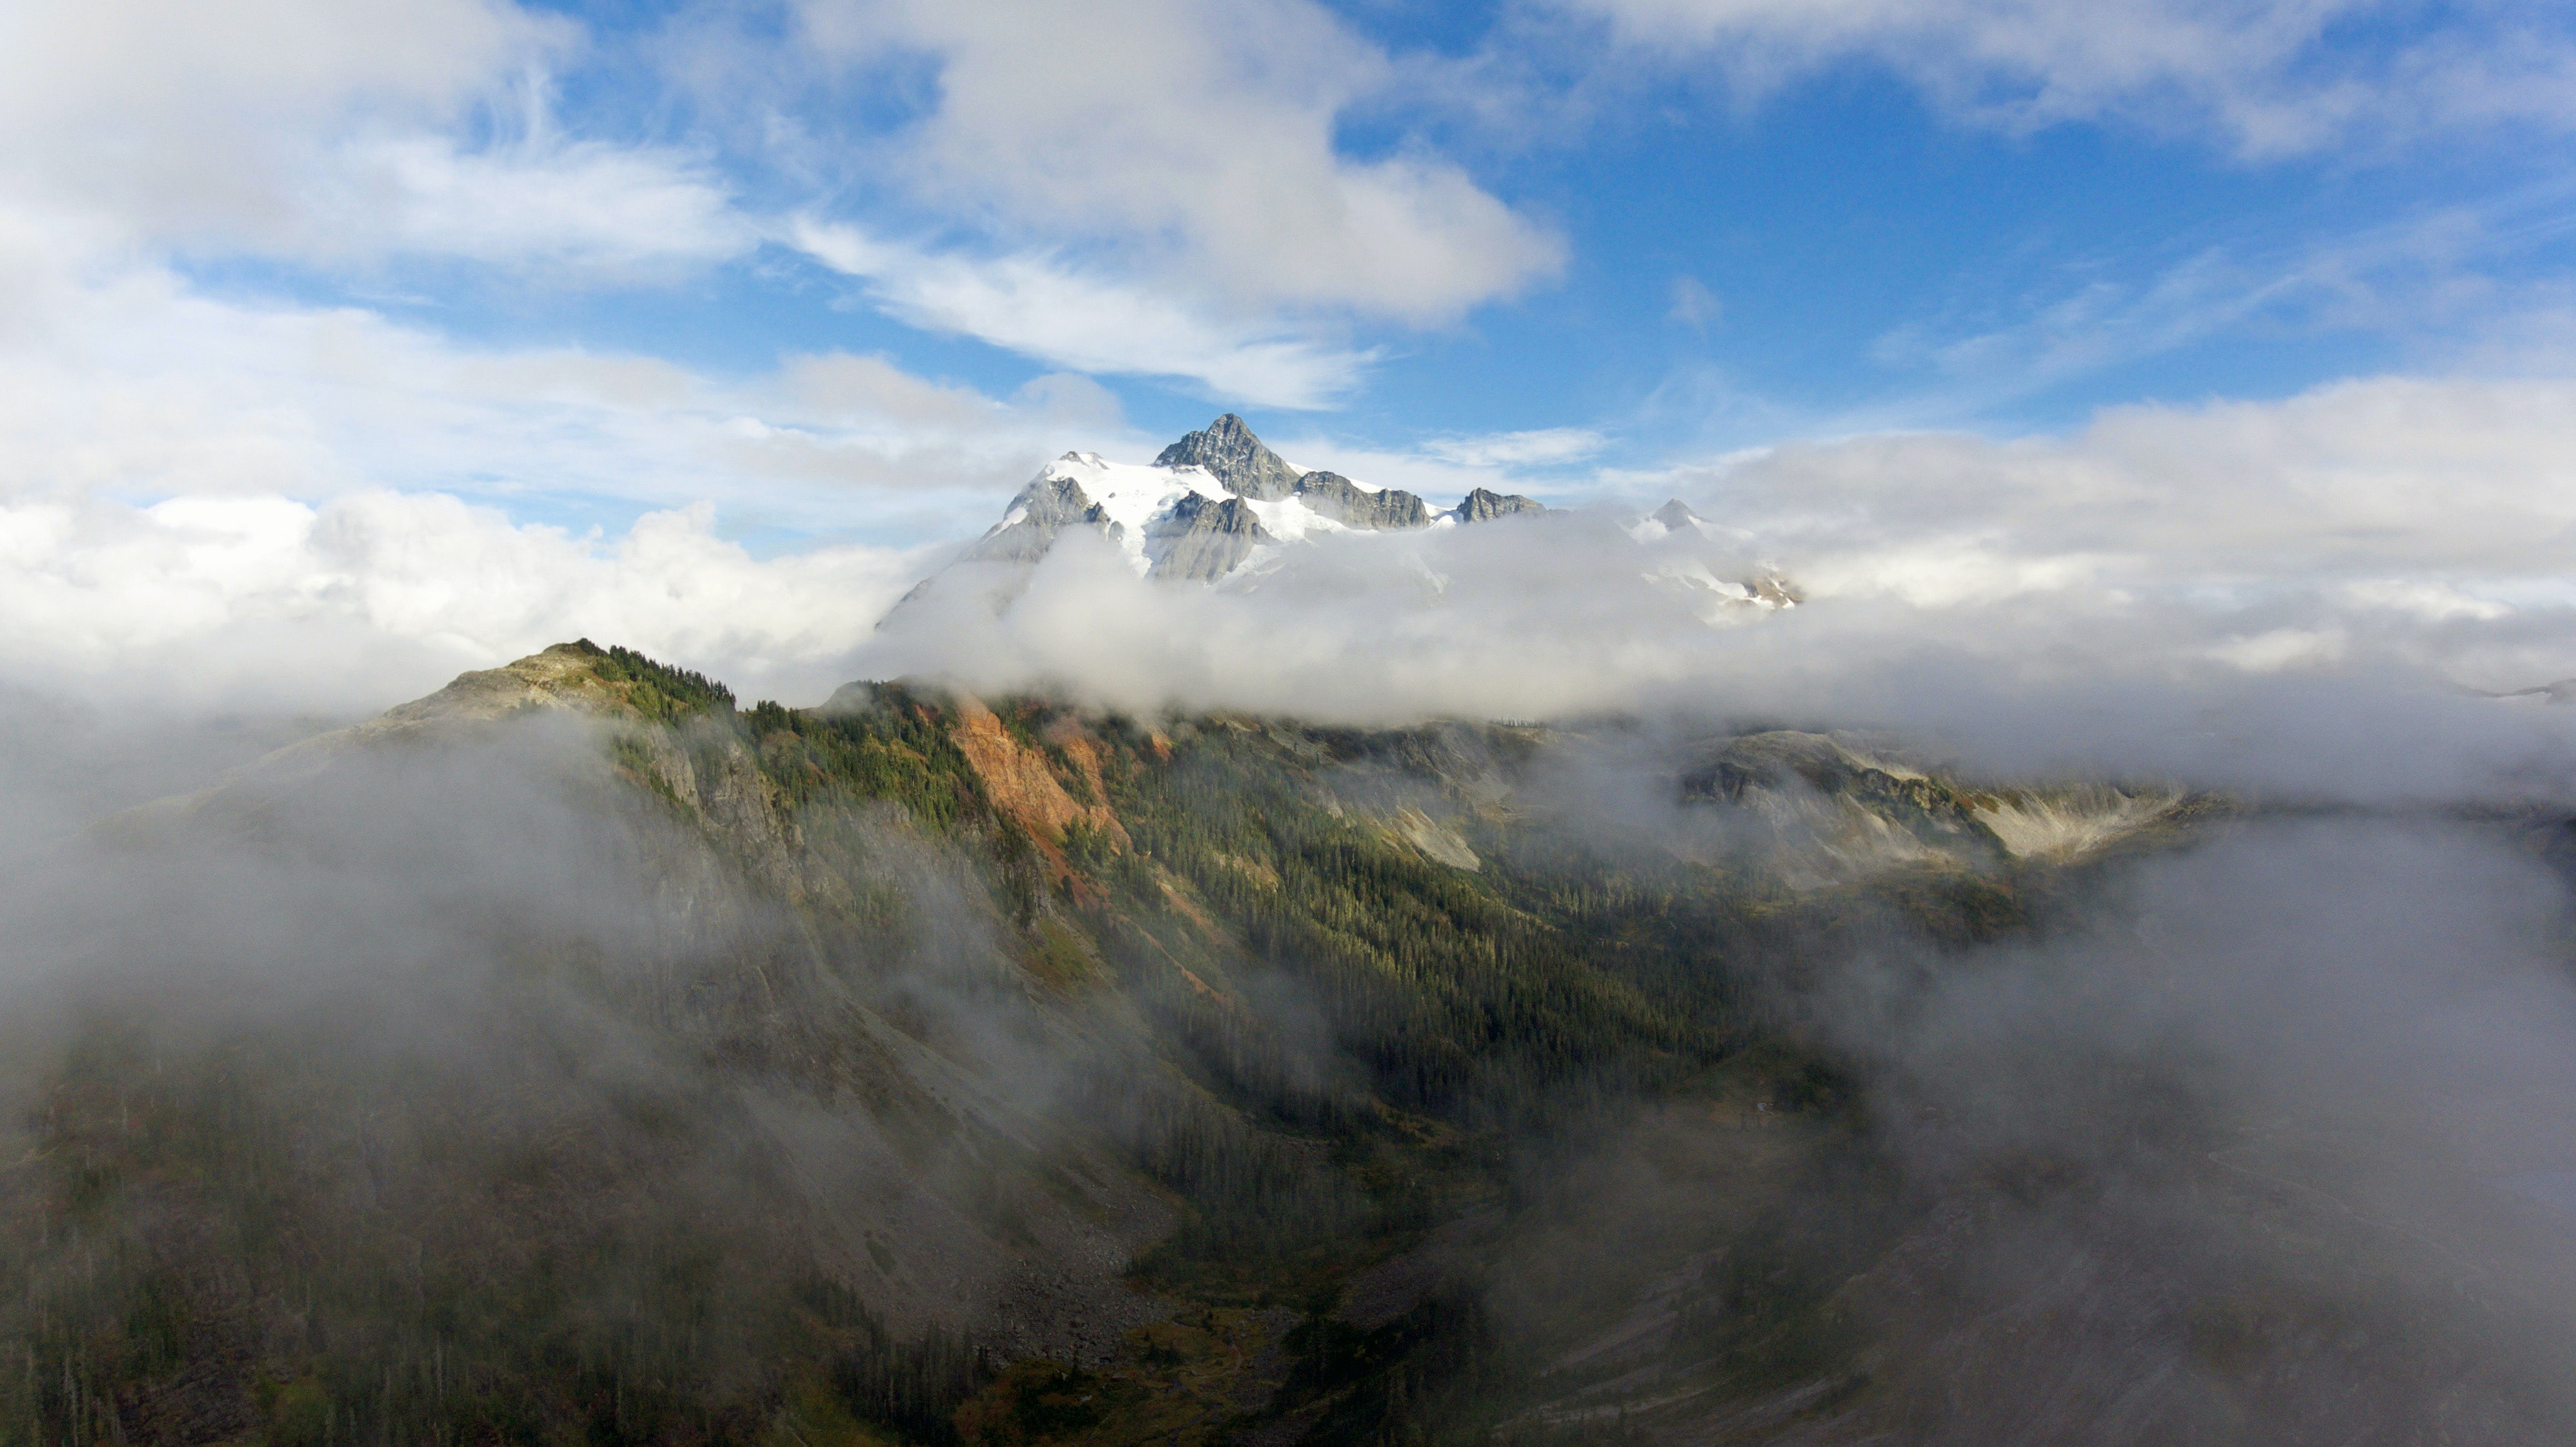 Clouds enveloping snowy peaks towering over forested valleys in the Mount Baker National Forest